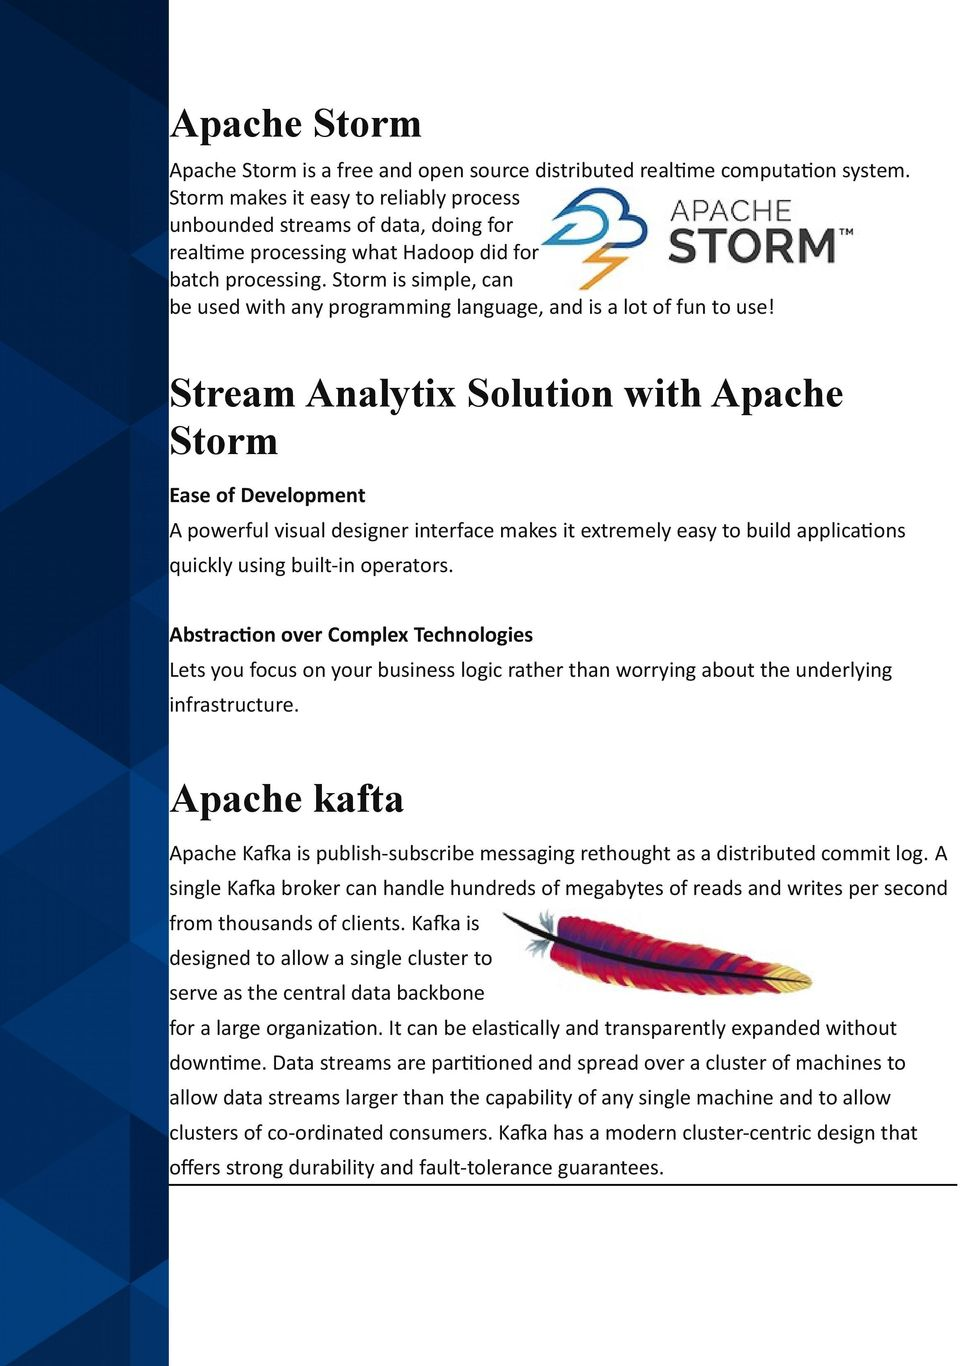 Storm is simple, can be used with any programming language, and is a lot of fun to use!